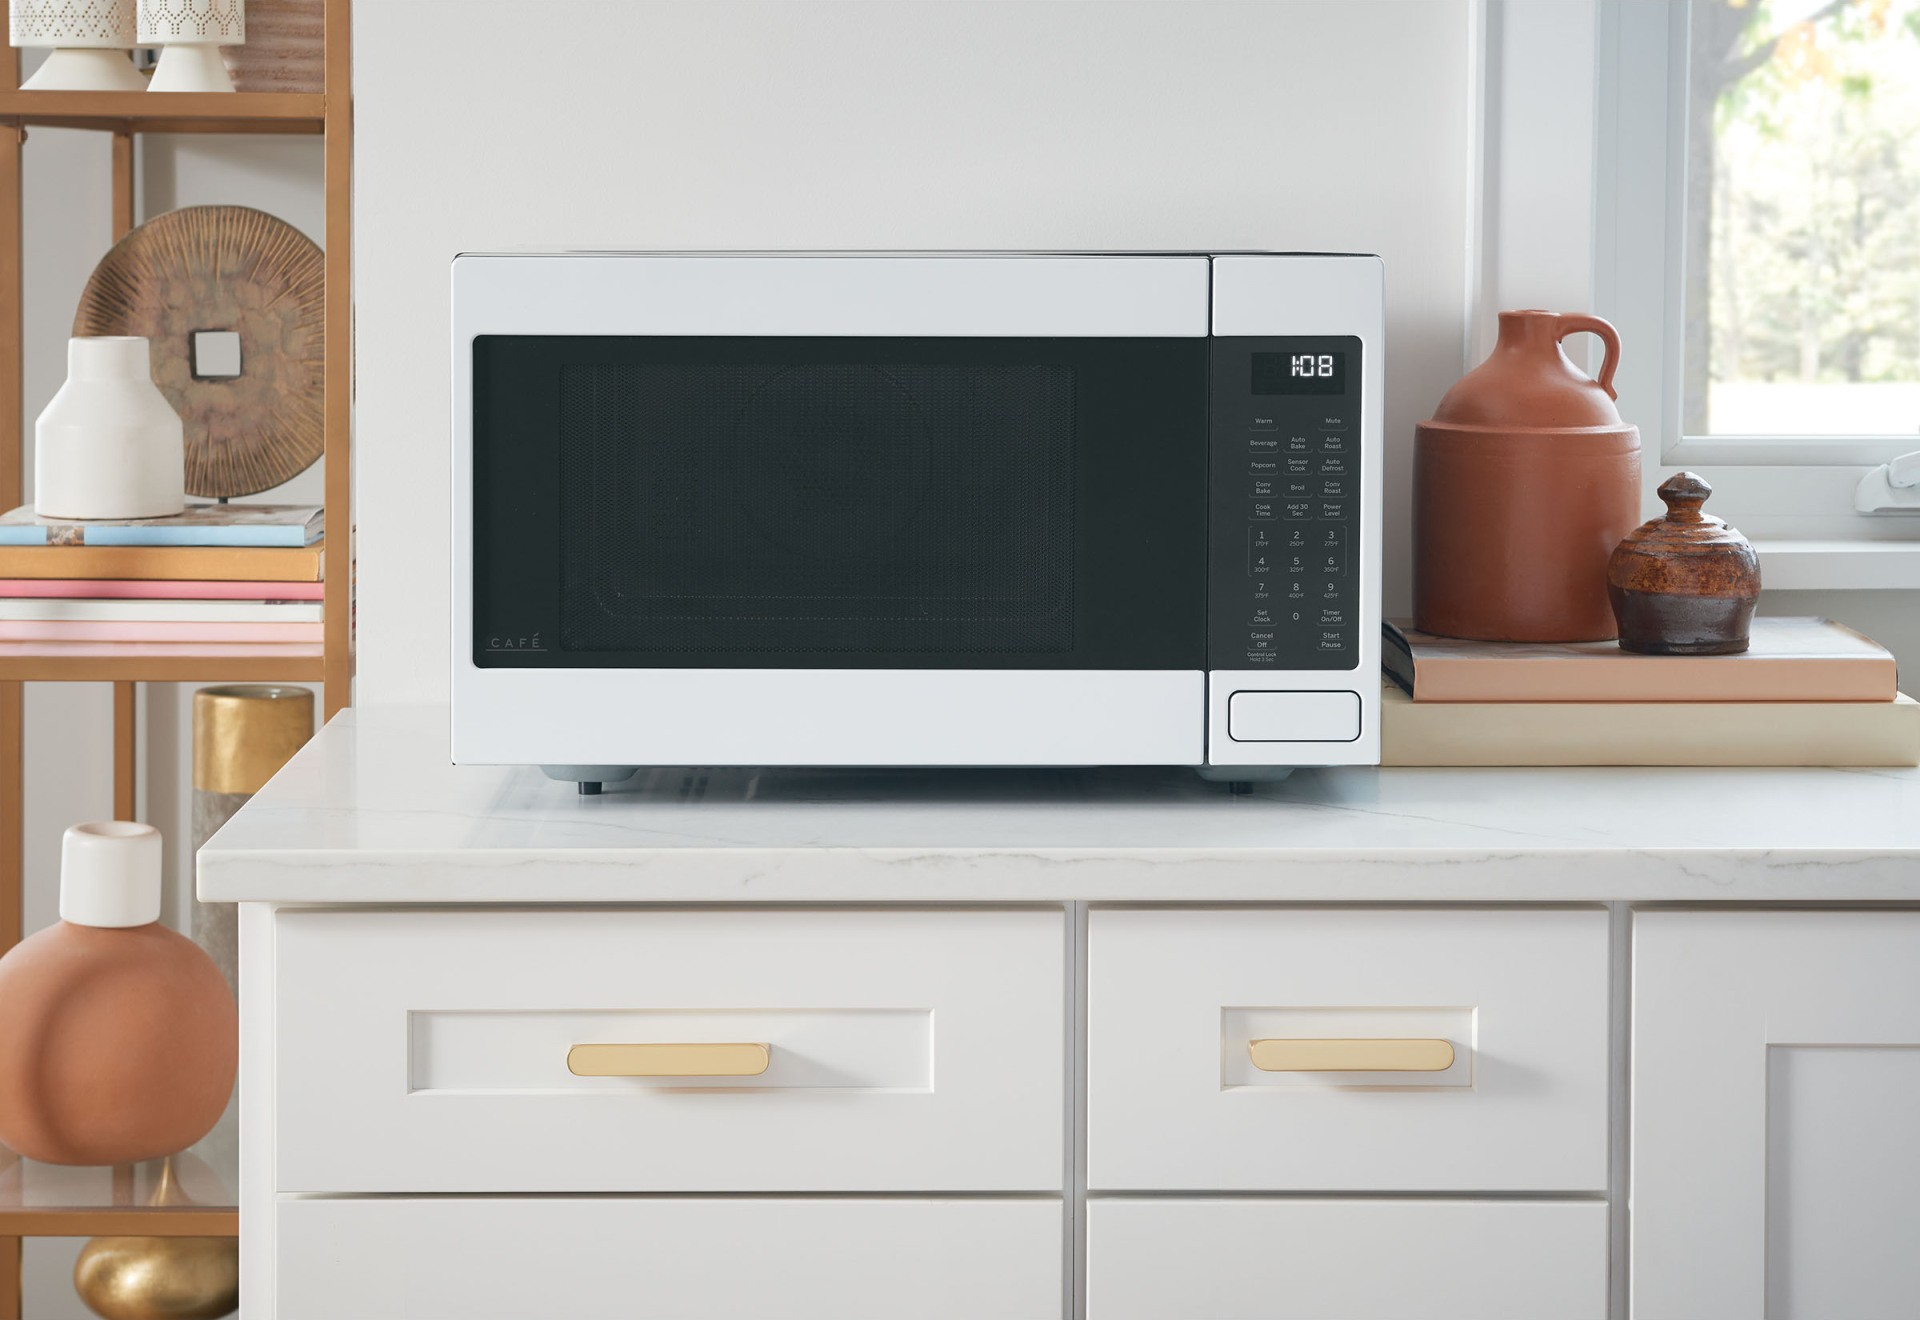 Cafe Countertop Or Built In Microwave